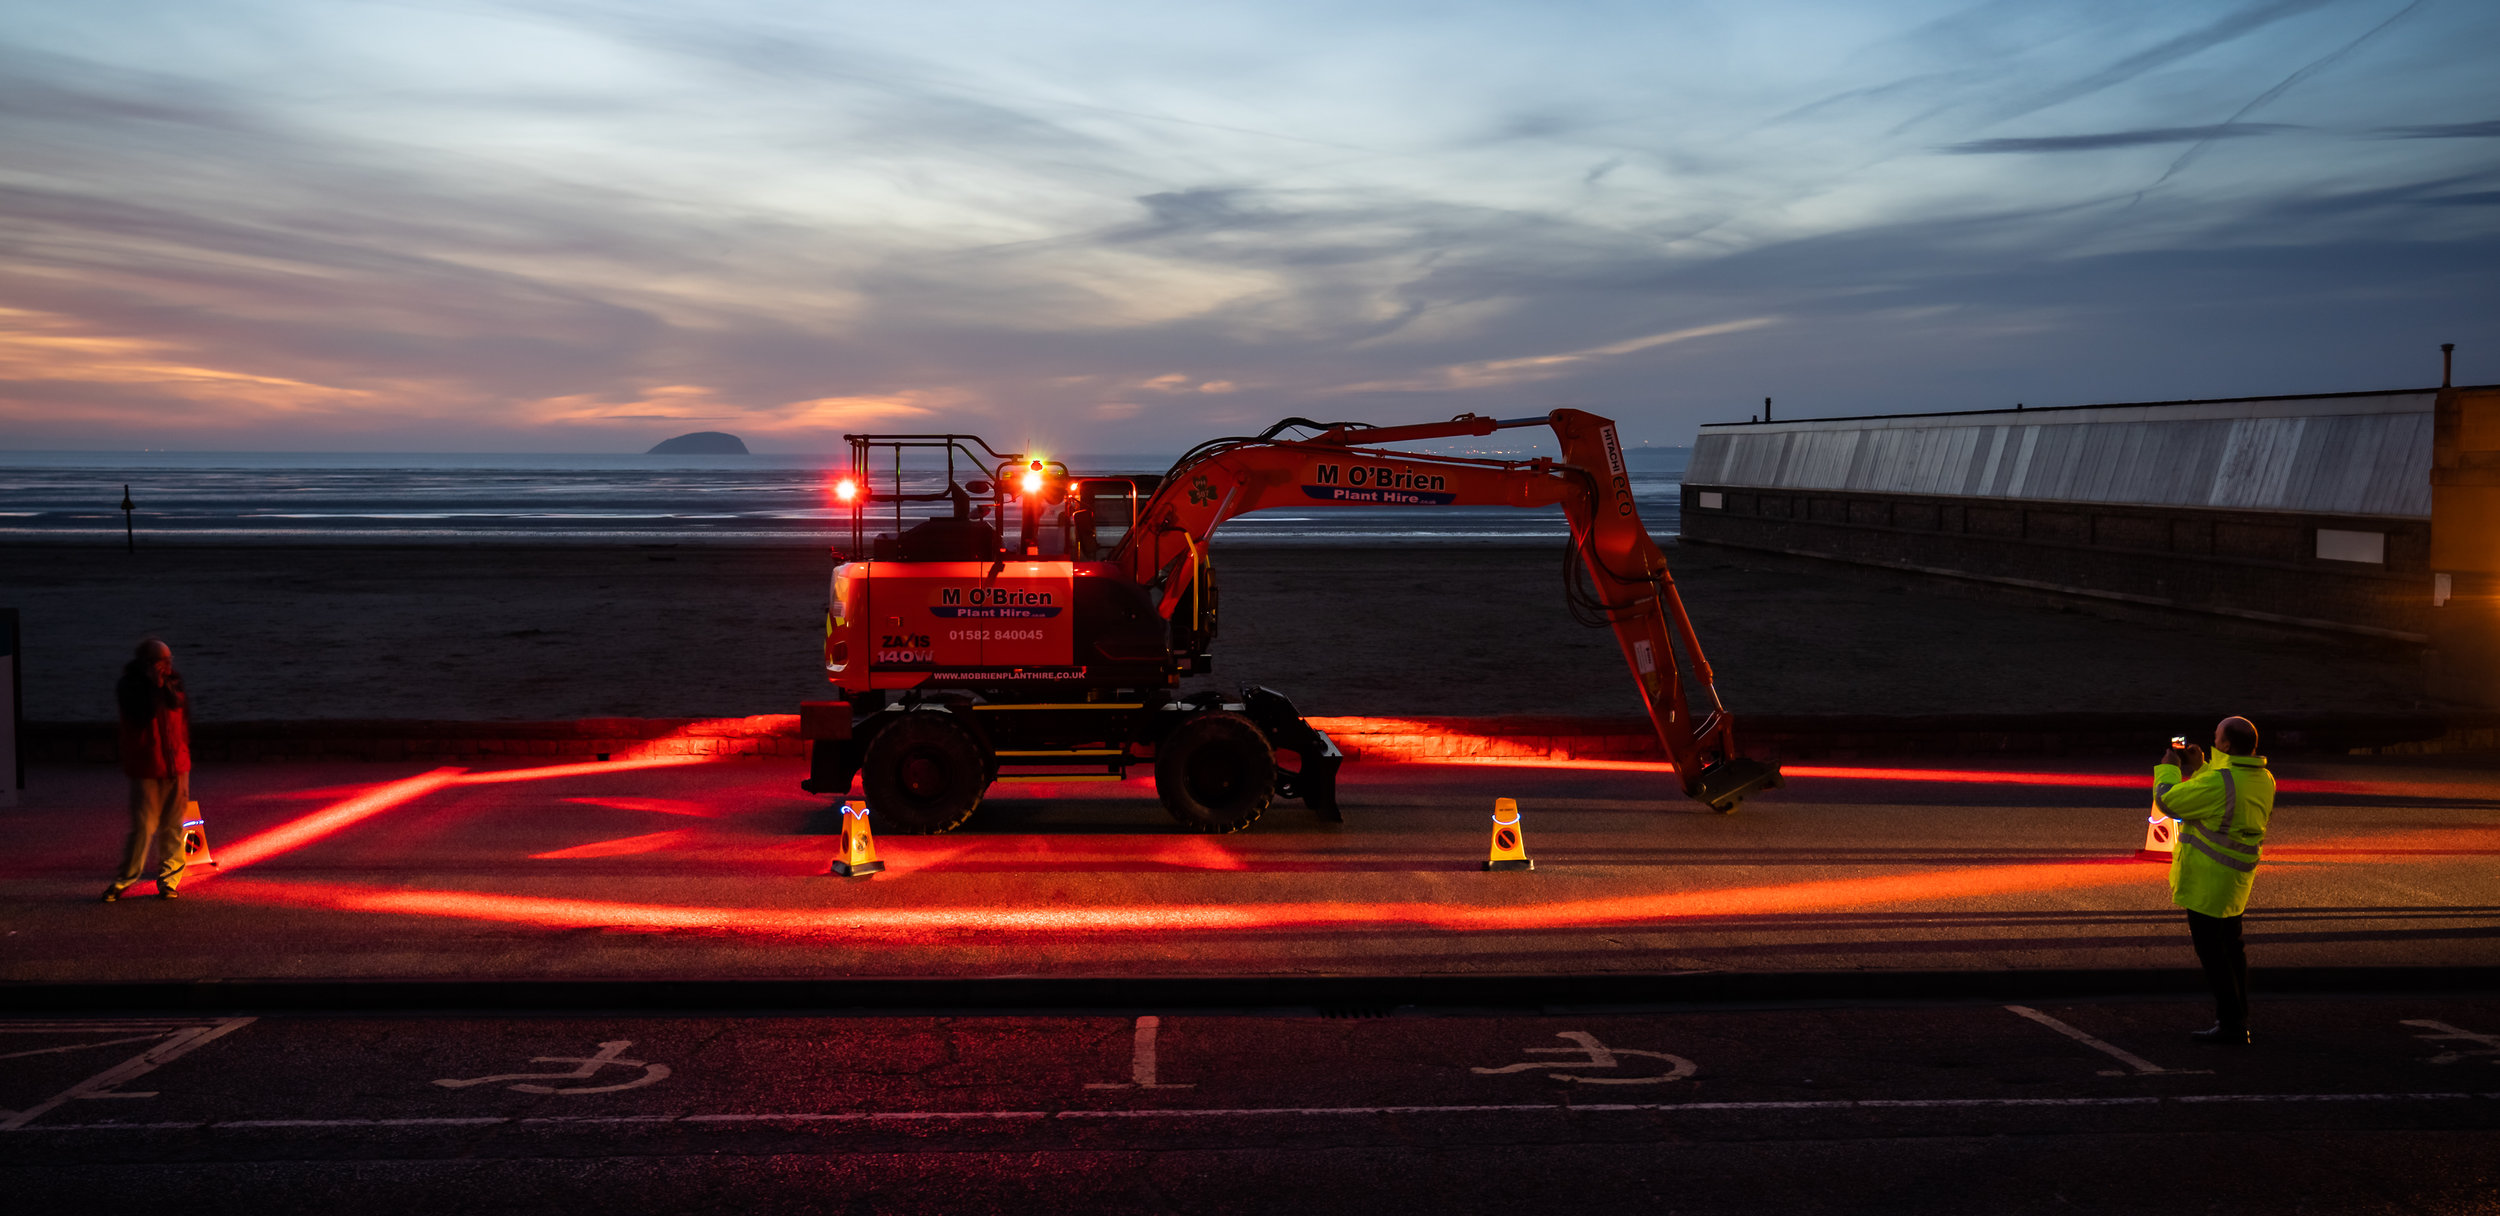 """""""We take safety very seriously, and we now have a total of 25 machines - wheeled and tracked - that are equipped with the Halo lighting system says. It is useful for night work of course, but it also has a value when working indoors on larger industrial building projects. Also when tunneling or in any area where ambient lighting is poor. We've also found the system to be really useful in winter, as it just adds that little bit of extra demarcation around kit before dawn and again, with an early sunset.""""  Dan O'Brien of St Albans-based M O'Brien Plant Hire."""